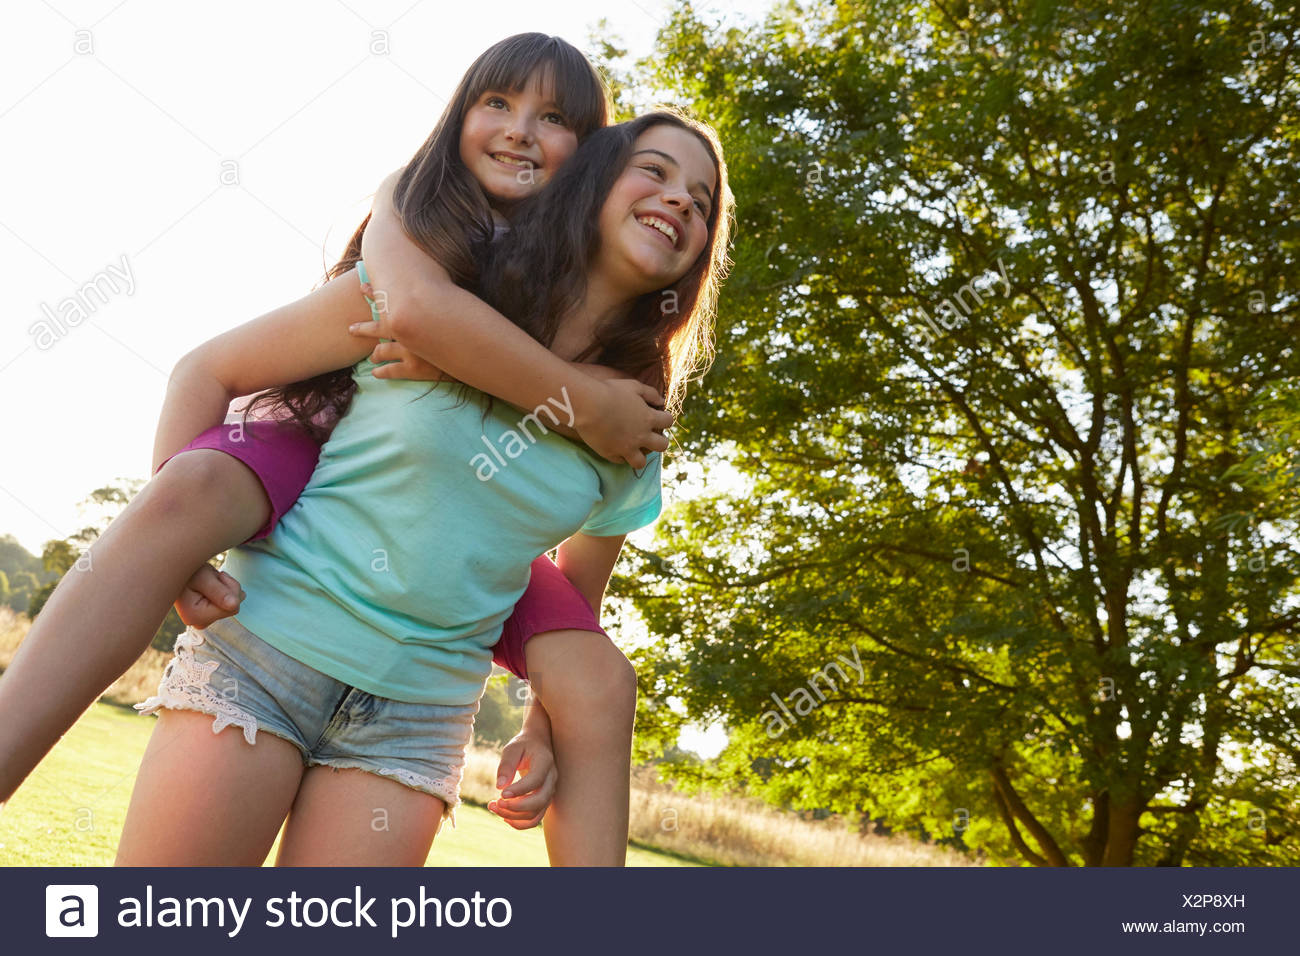 Girl giving her best friend a piggy back in park - Stock Image